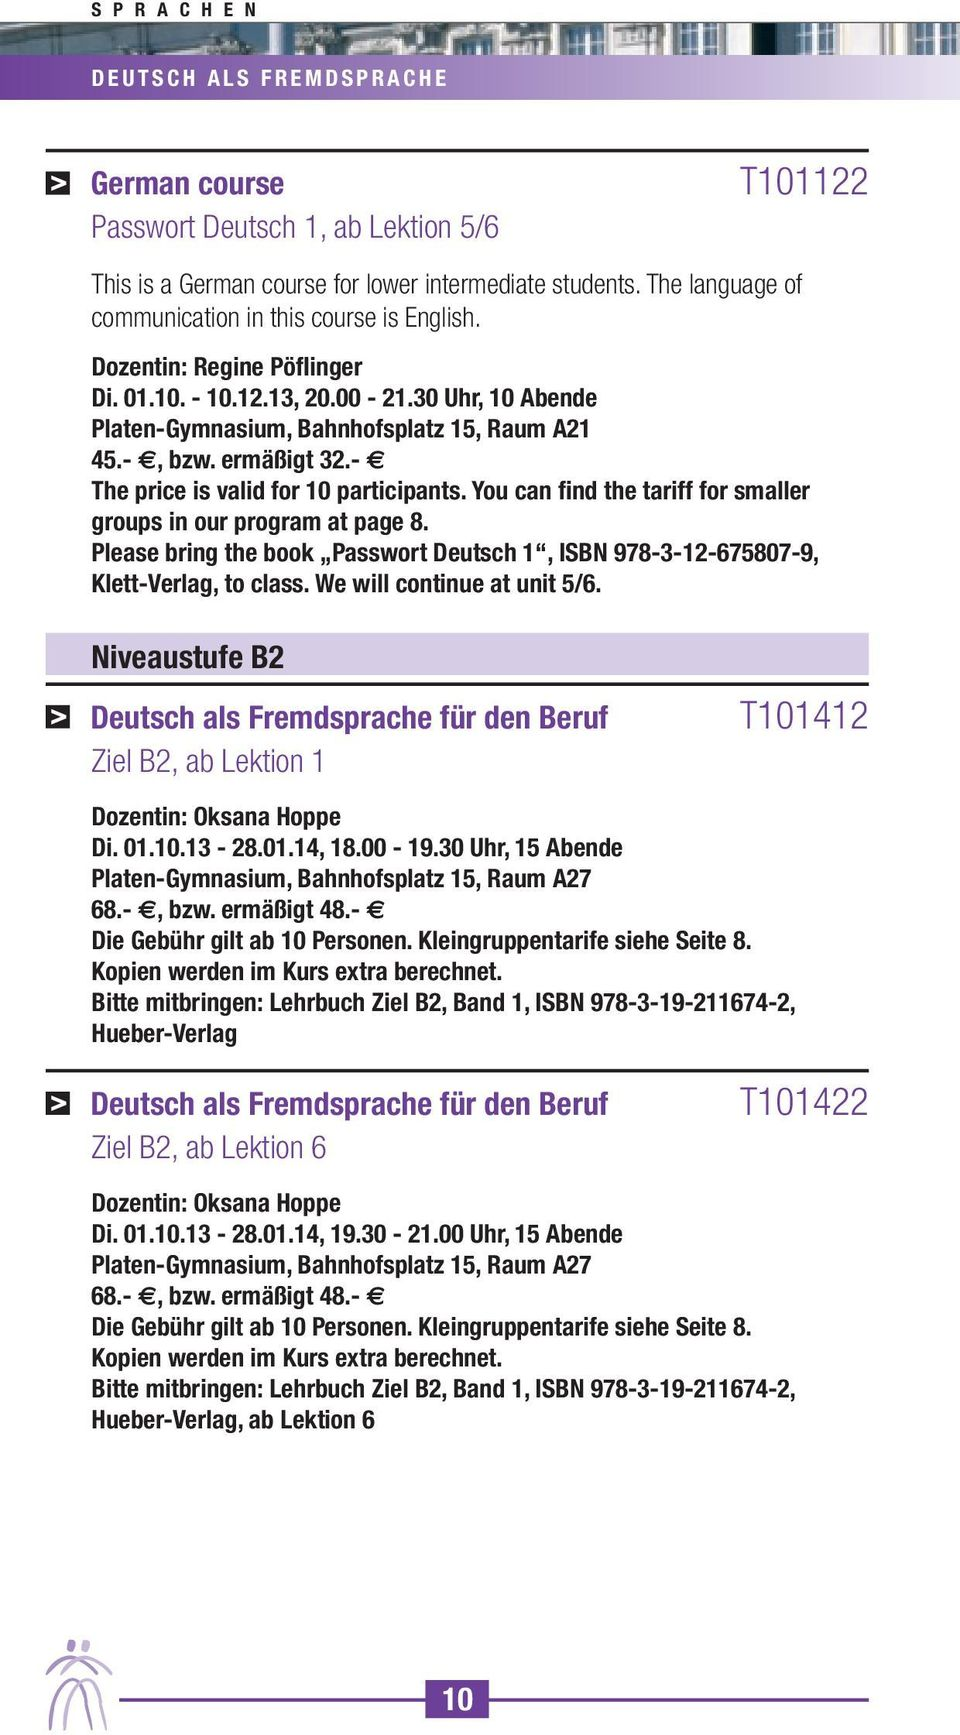 ermäßigt 32.- The price is valid for 10 participants. You can find the tariff for smaller groups in our program at page 8.